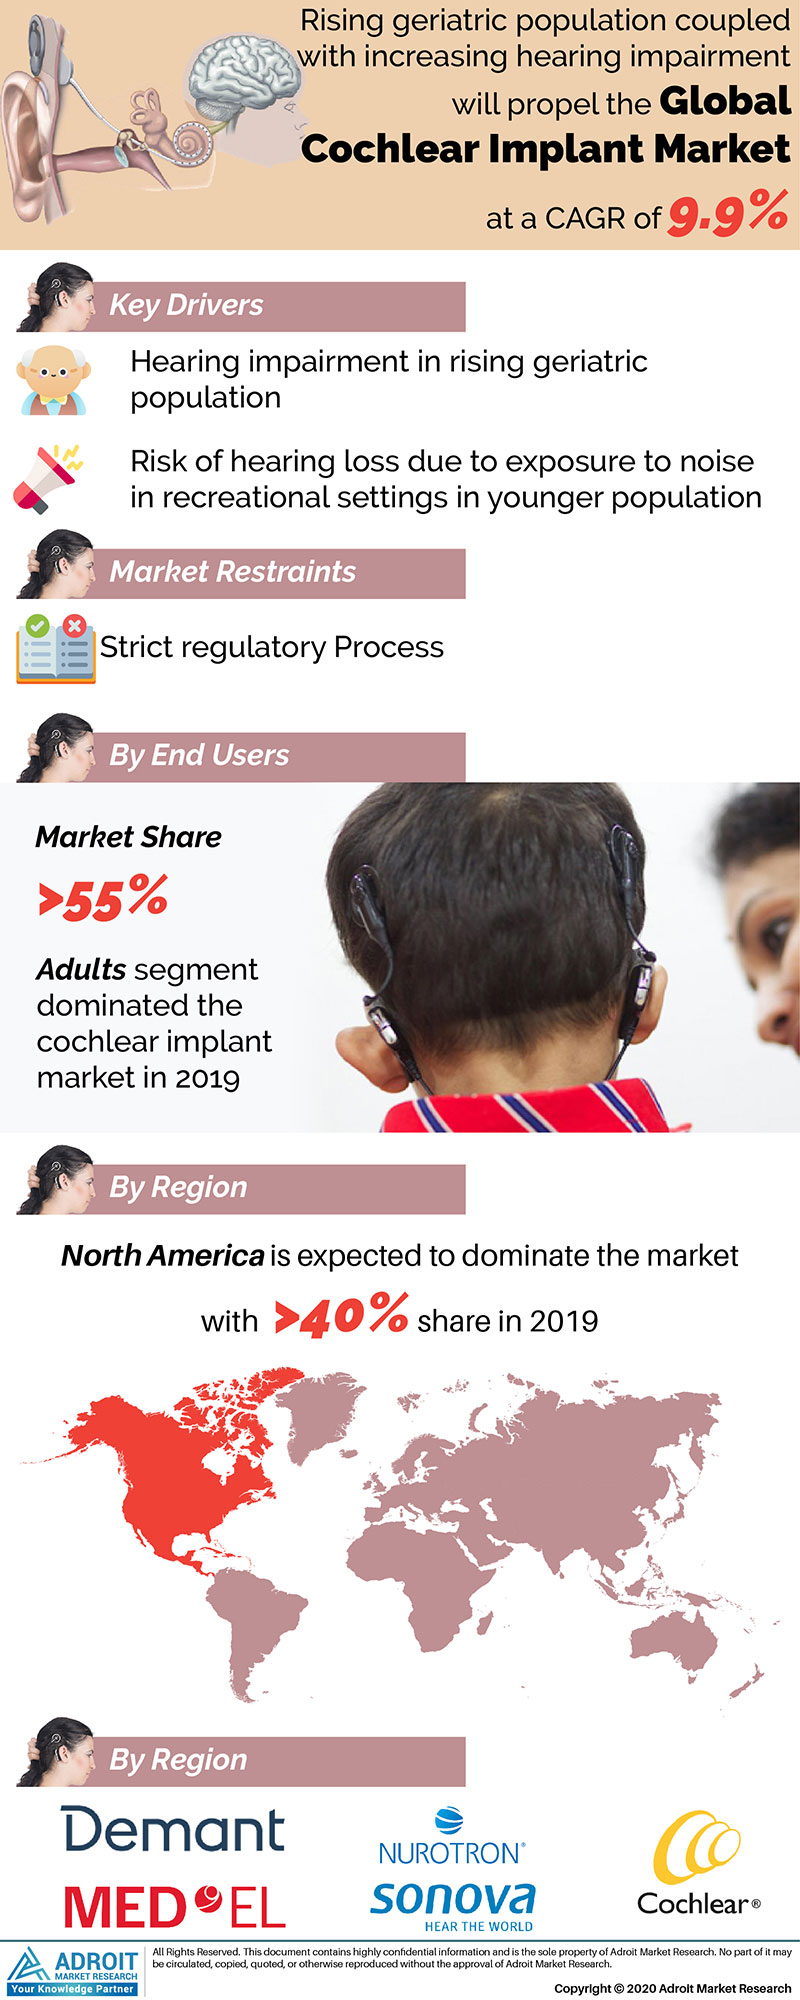 Cochlear Implant Market Size 2017 By Application, Product, Region and Forecast 2019 to 2025